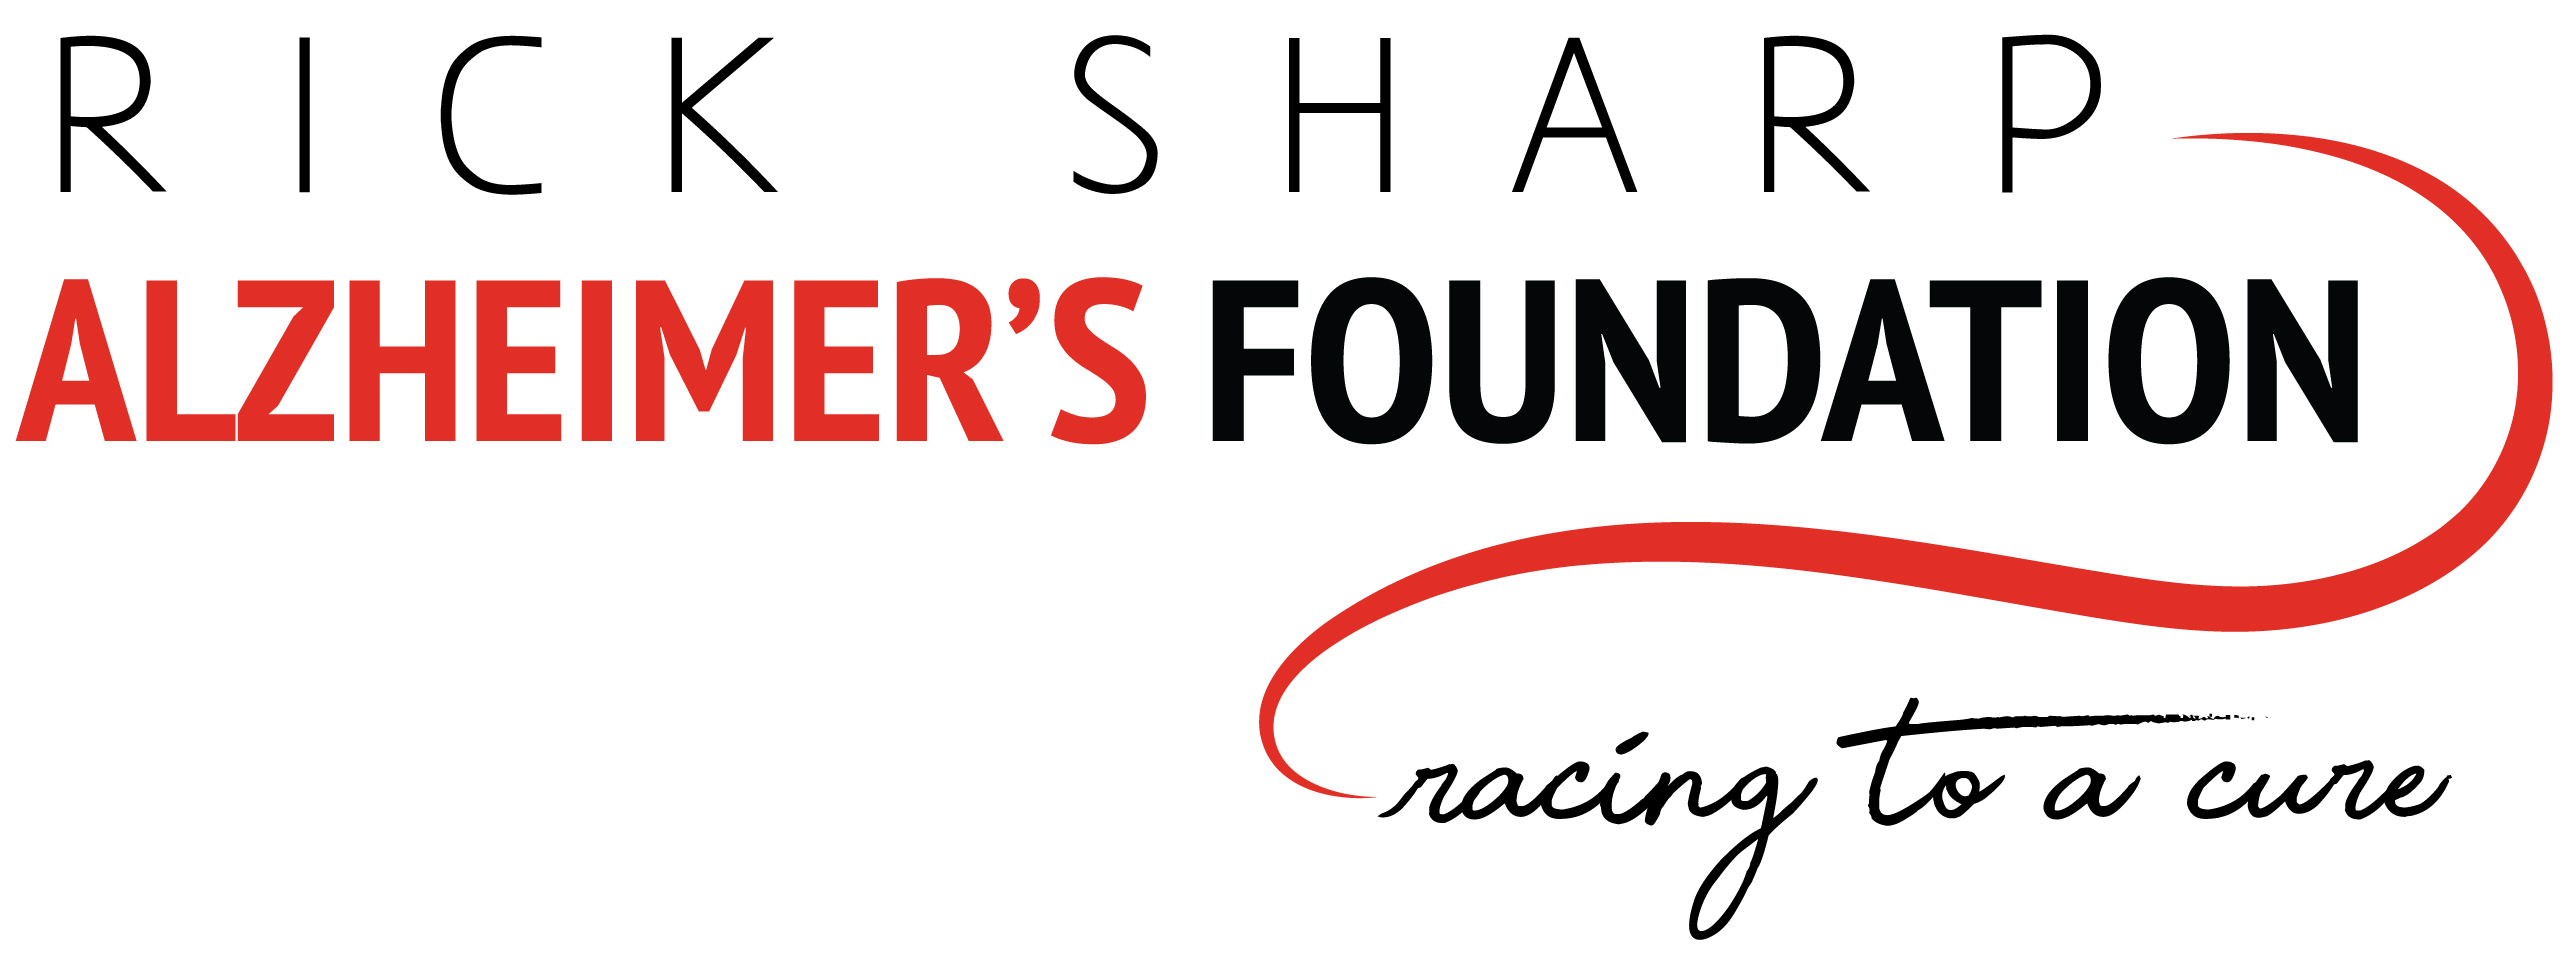 The Rick Sharp Alzheimer's Foundation